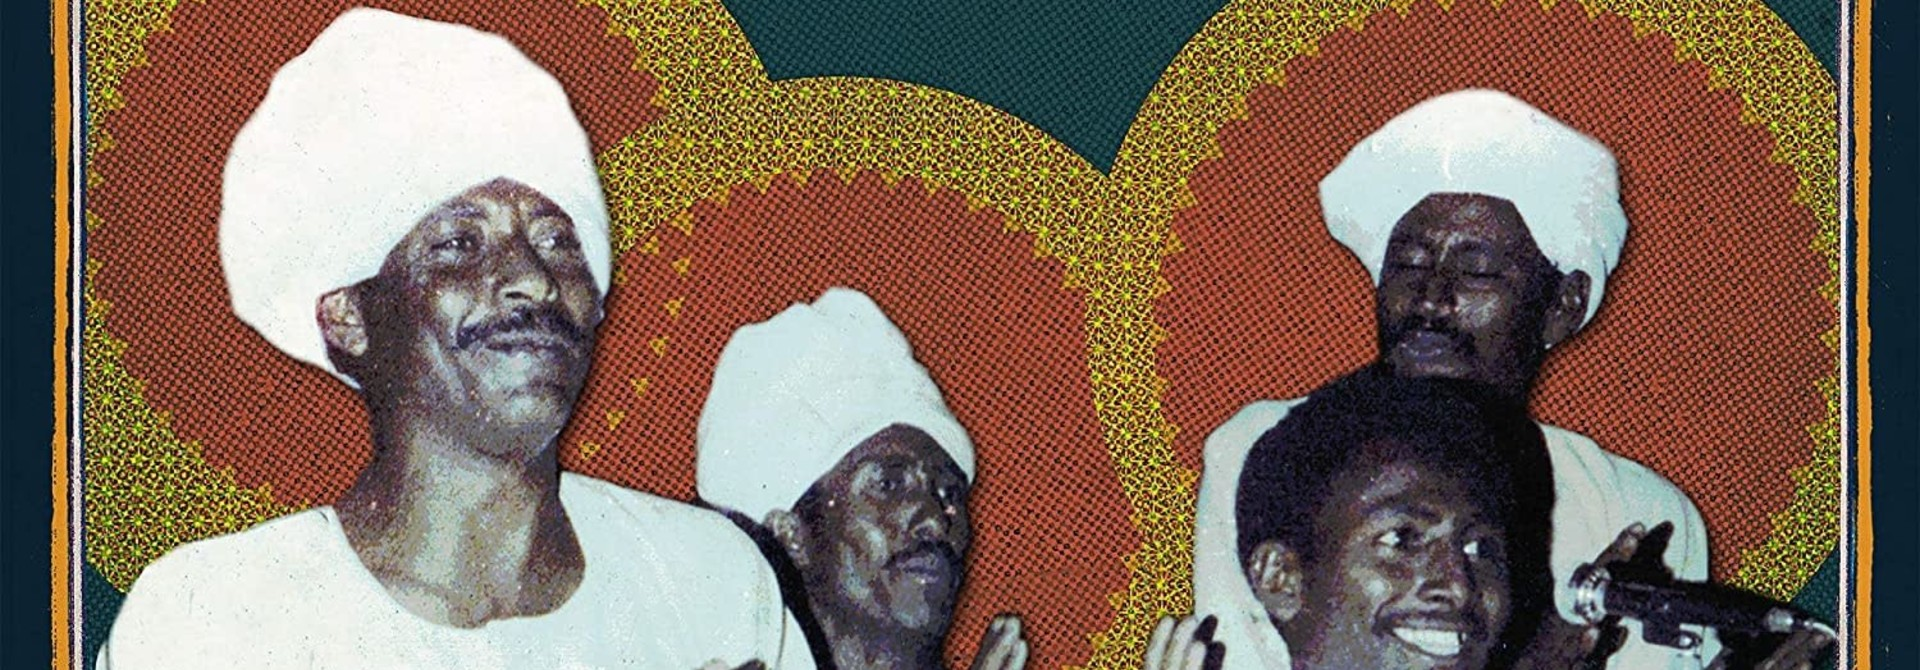 Artistes Variés • Two Niles to Sing a Melody: The Violins & Synths of Sudan